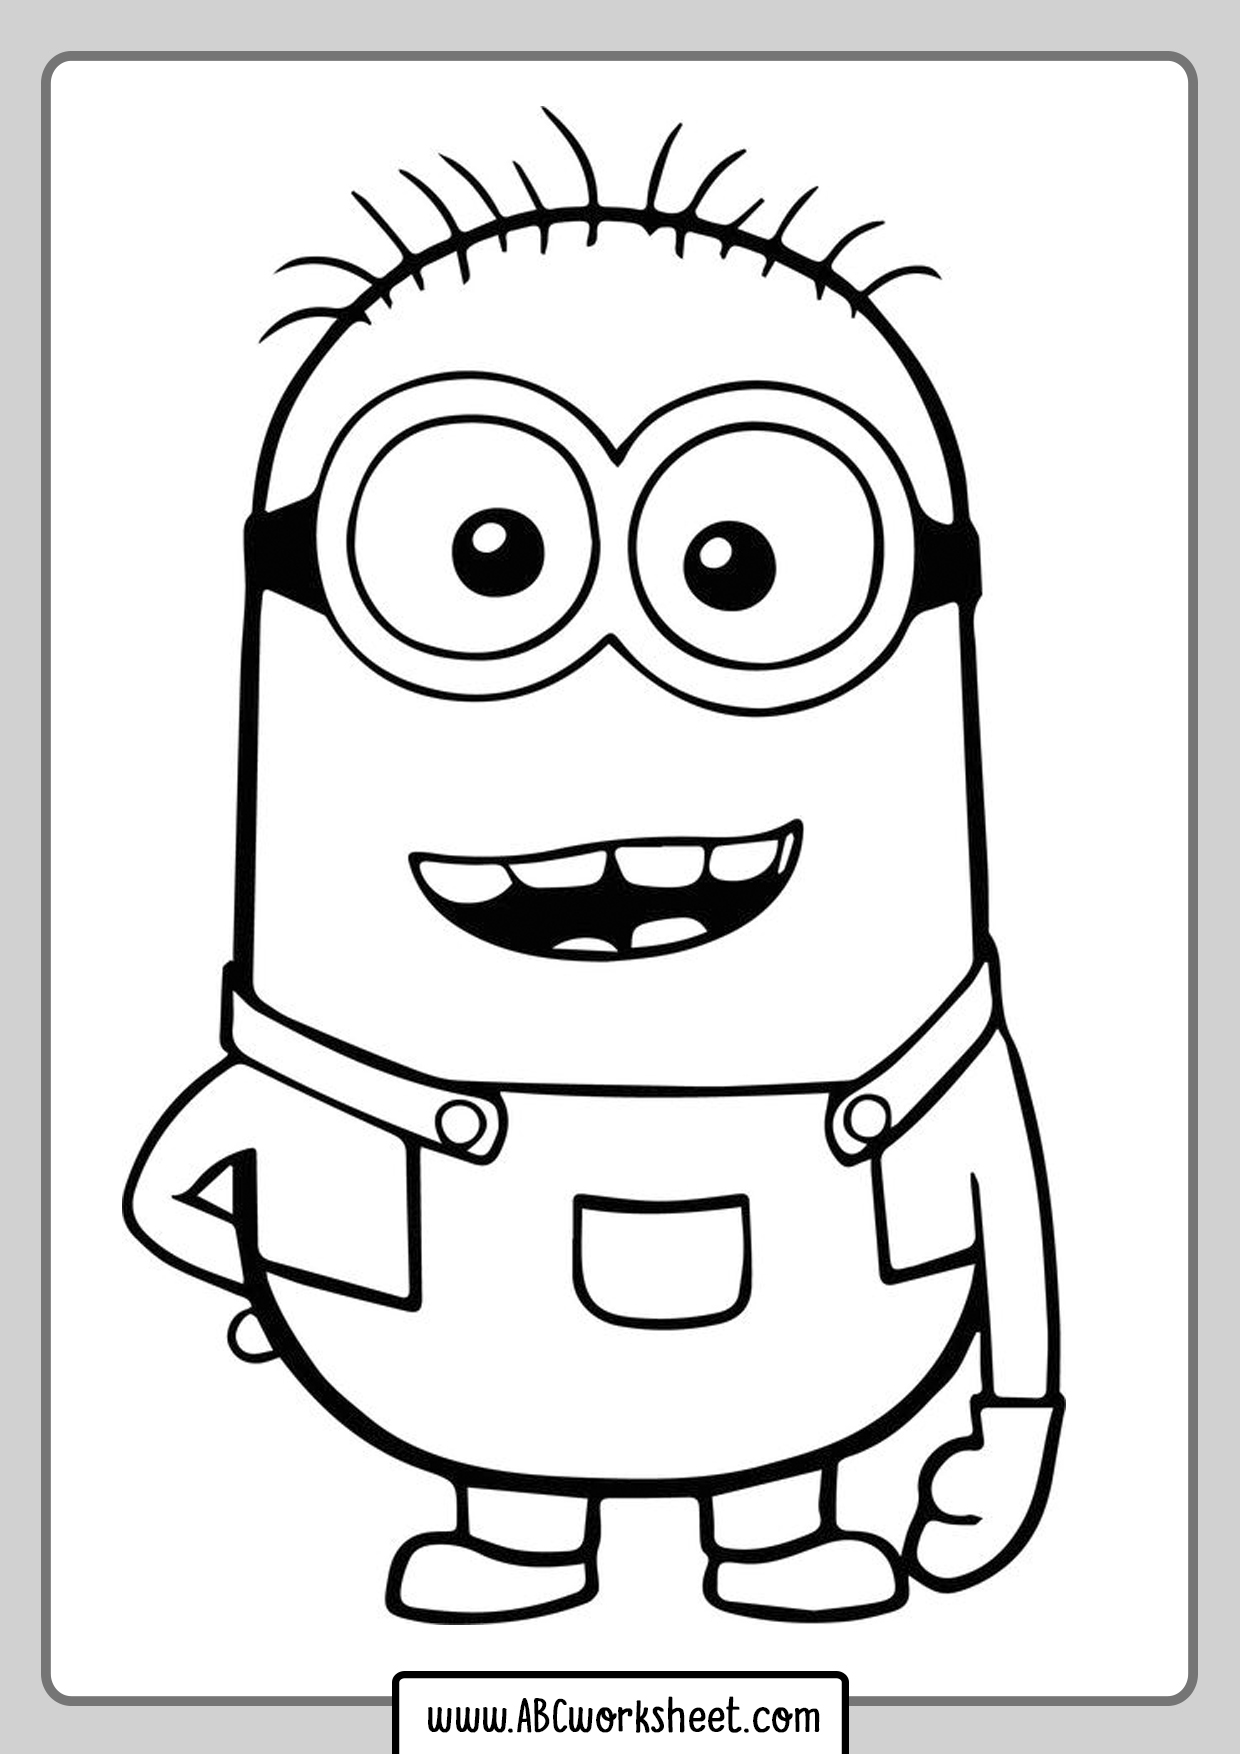 Coloring Minions Coloring Pages For Kids